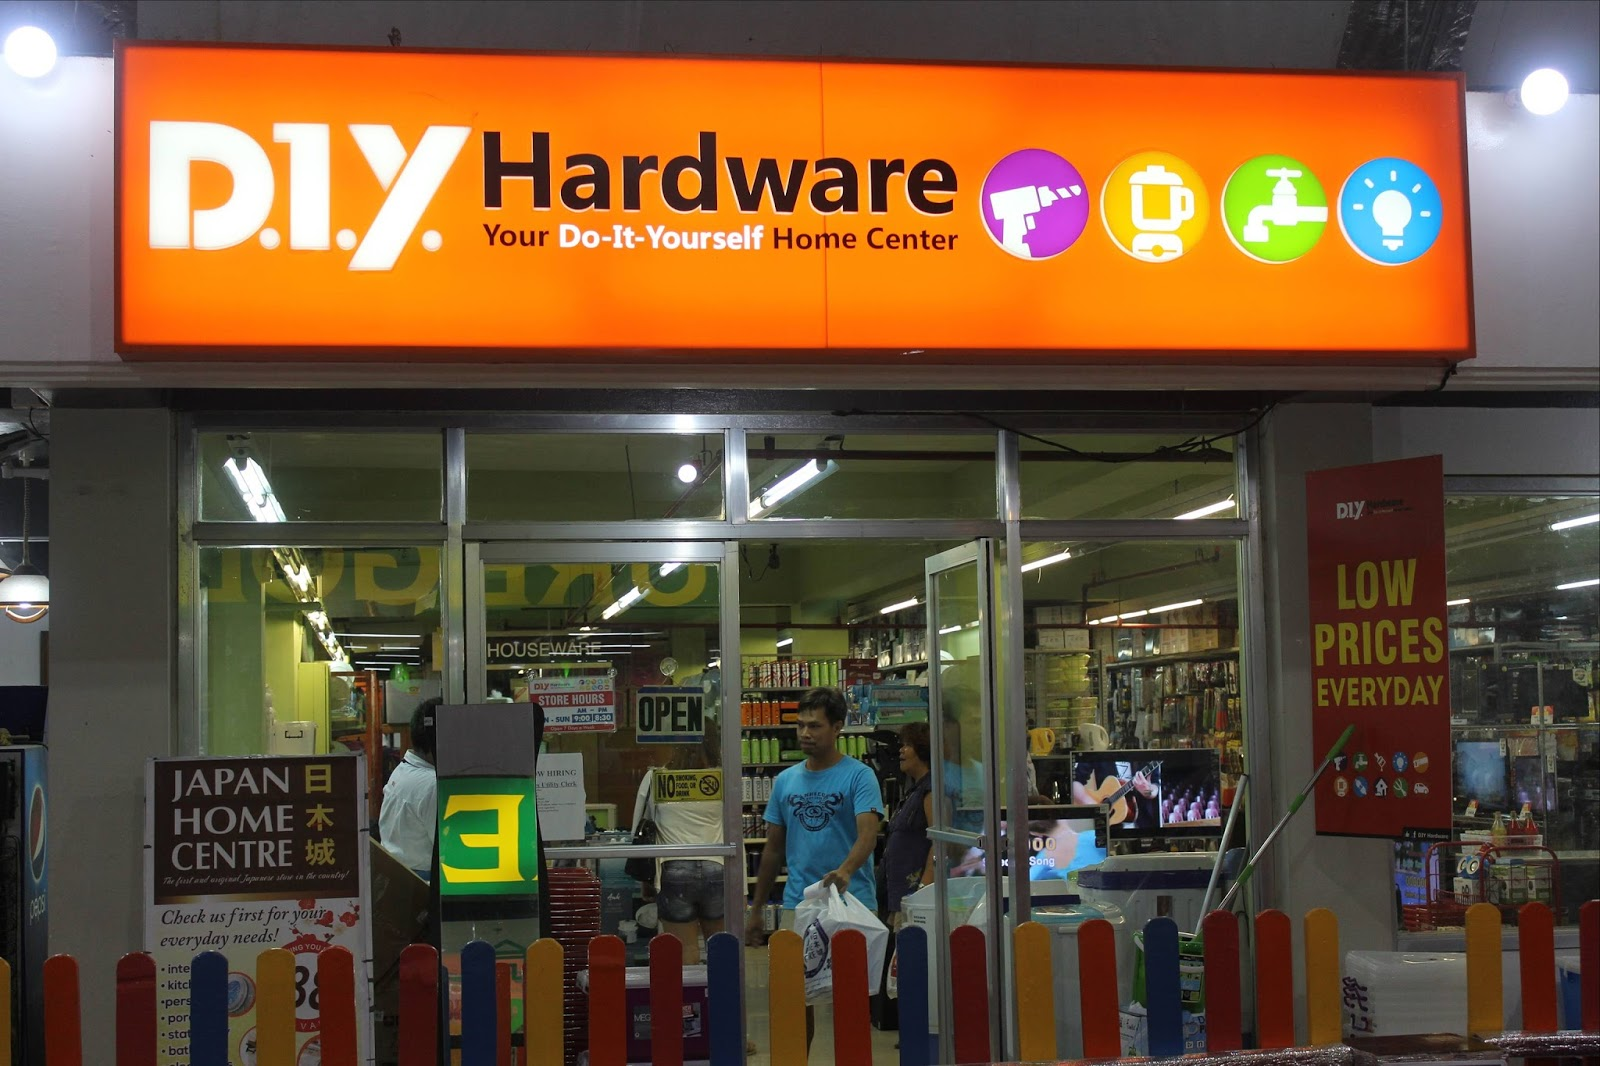 Stay stray play and feast aljosh caf rediscovered aldp plaza former space was taken over by diy a hardware store solutioingenieria Choice Image